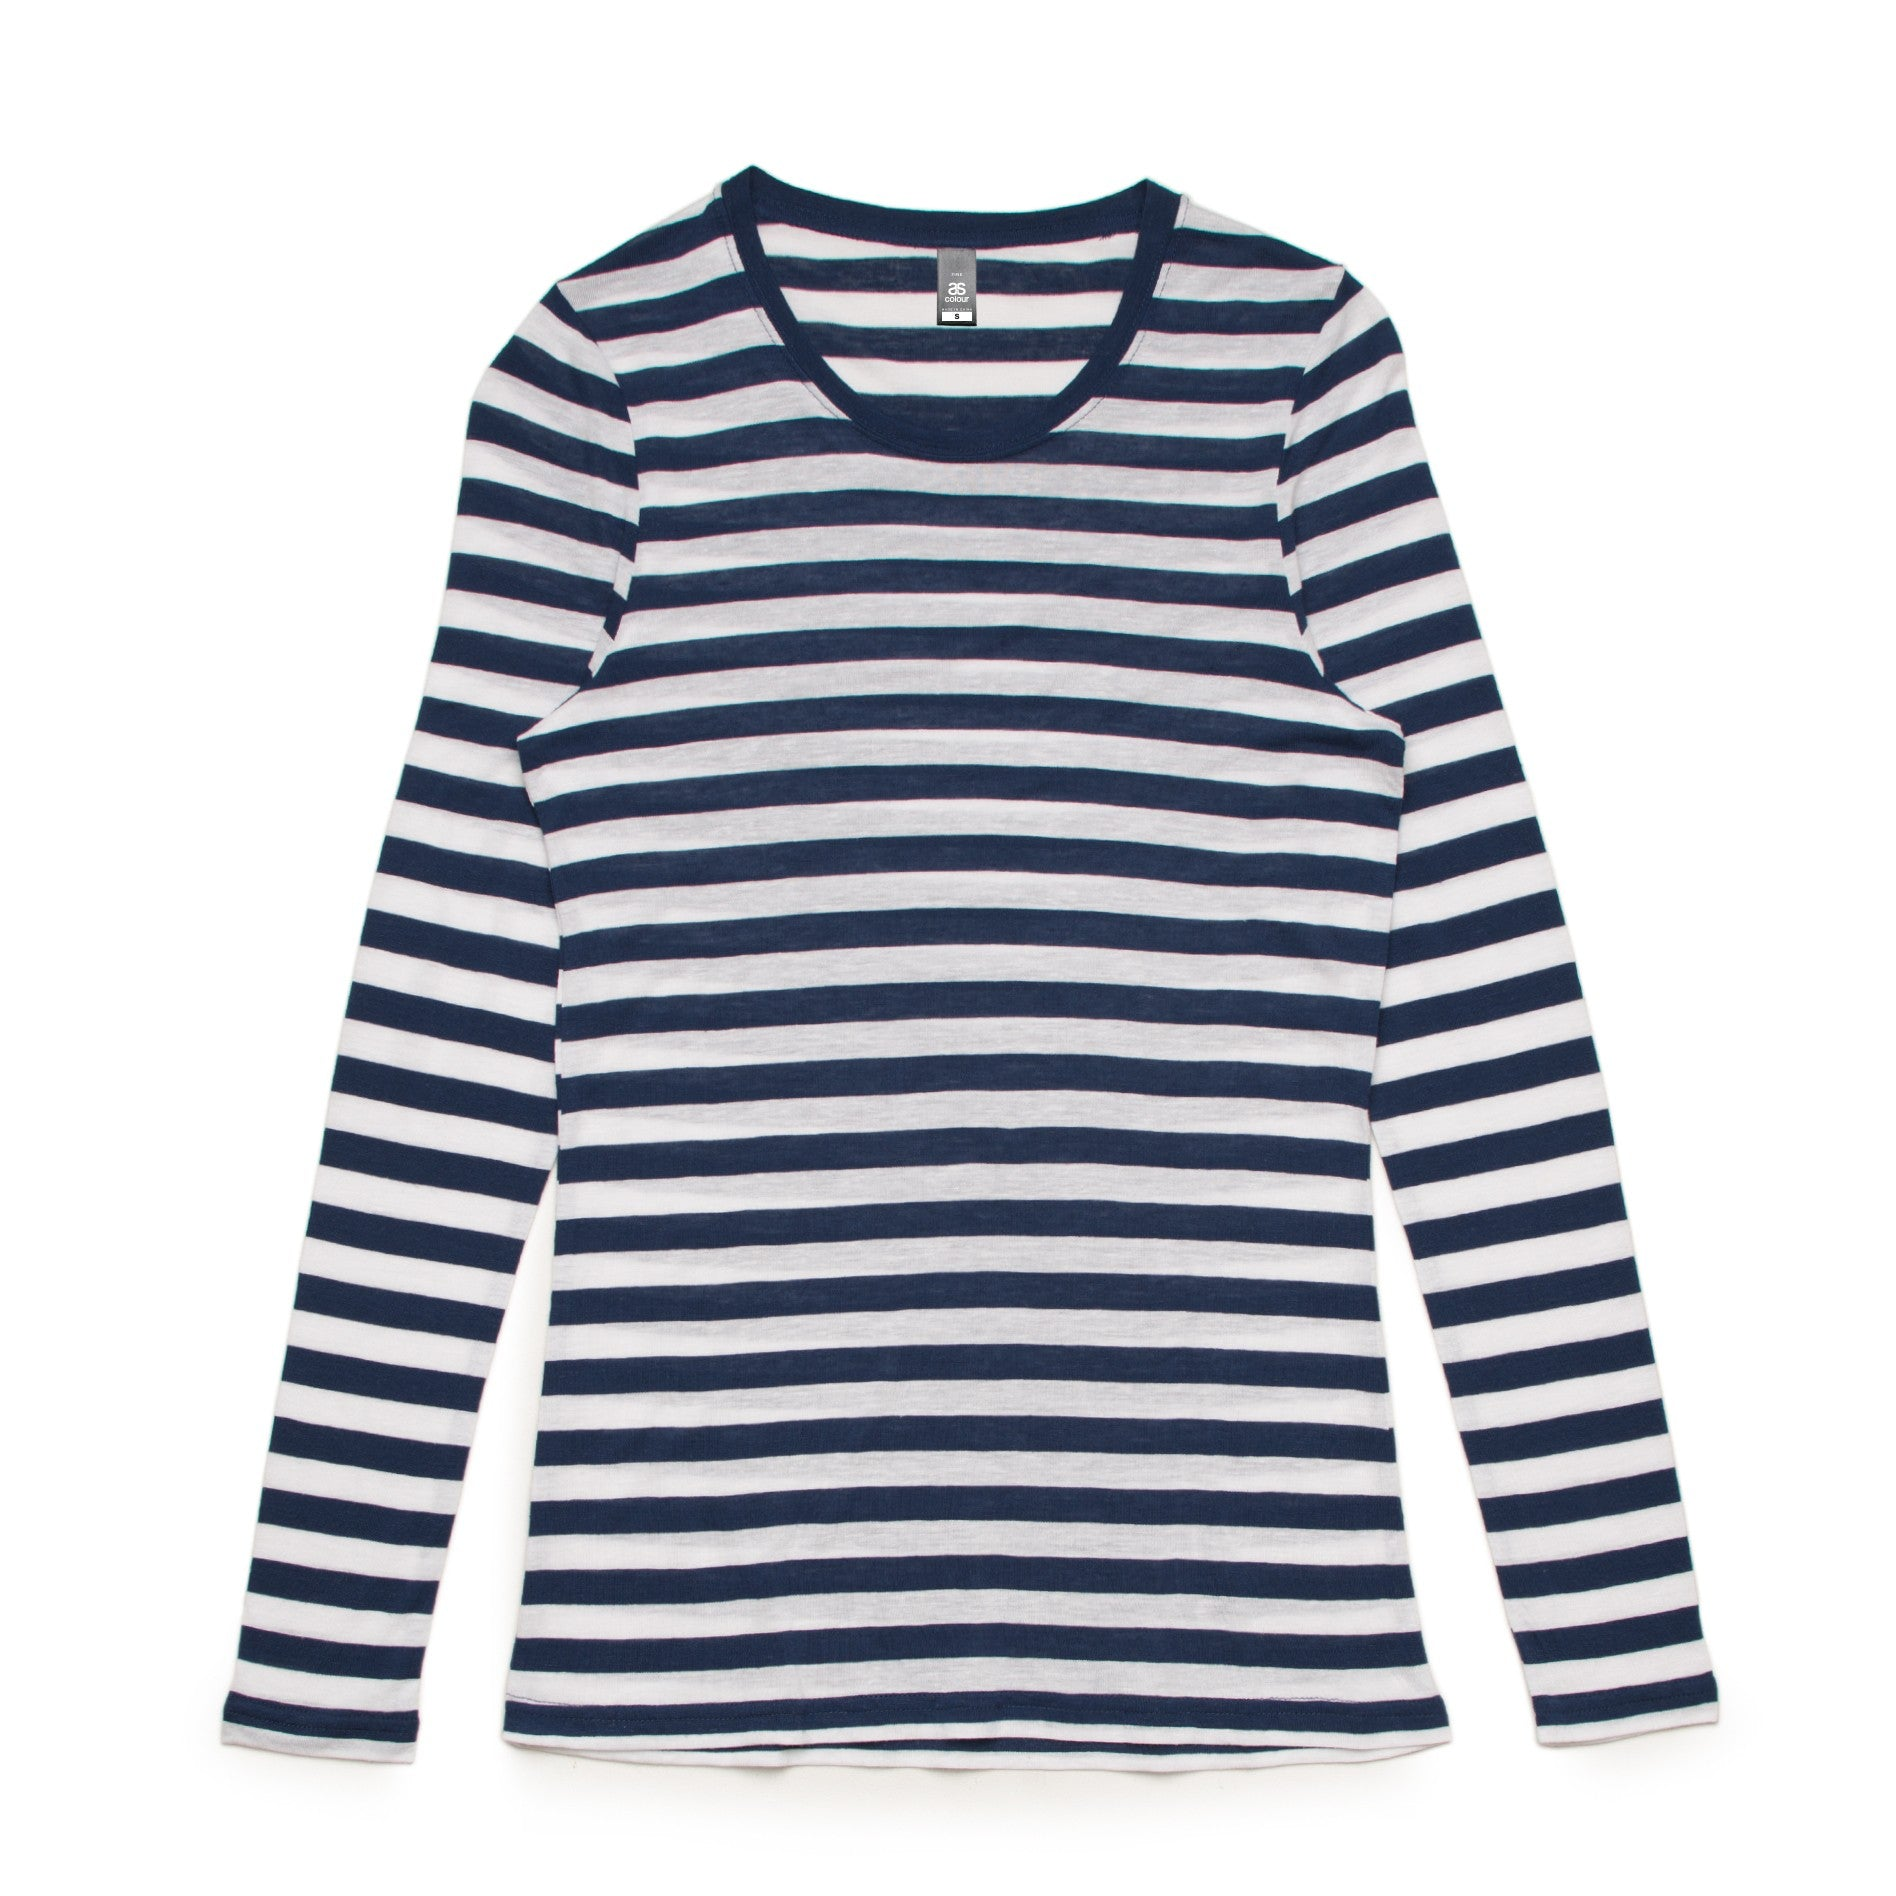 FINE STRIPE L/S TEE - BUY ONE GET ONE FREE